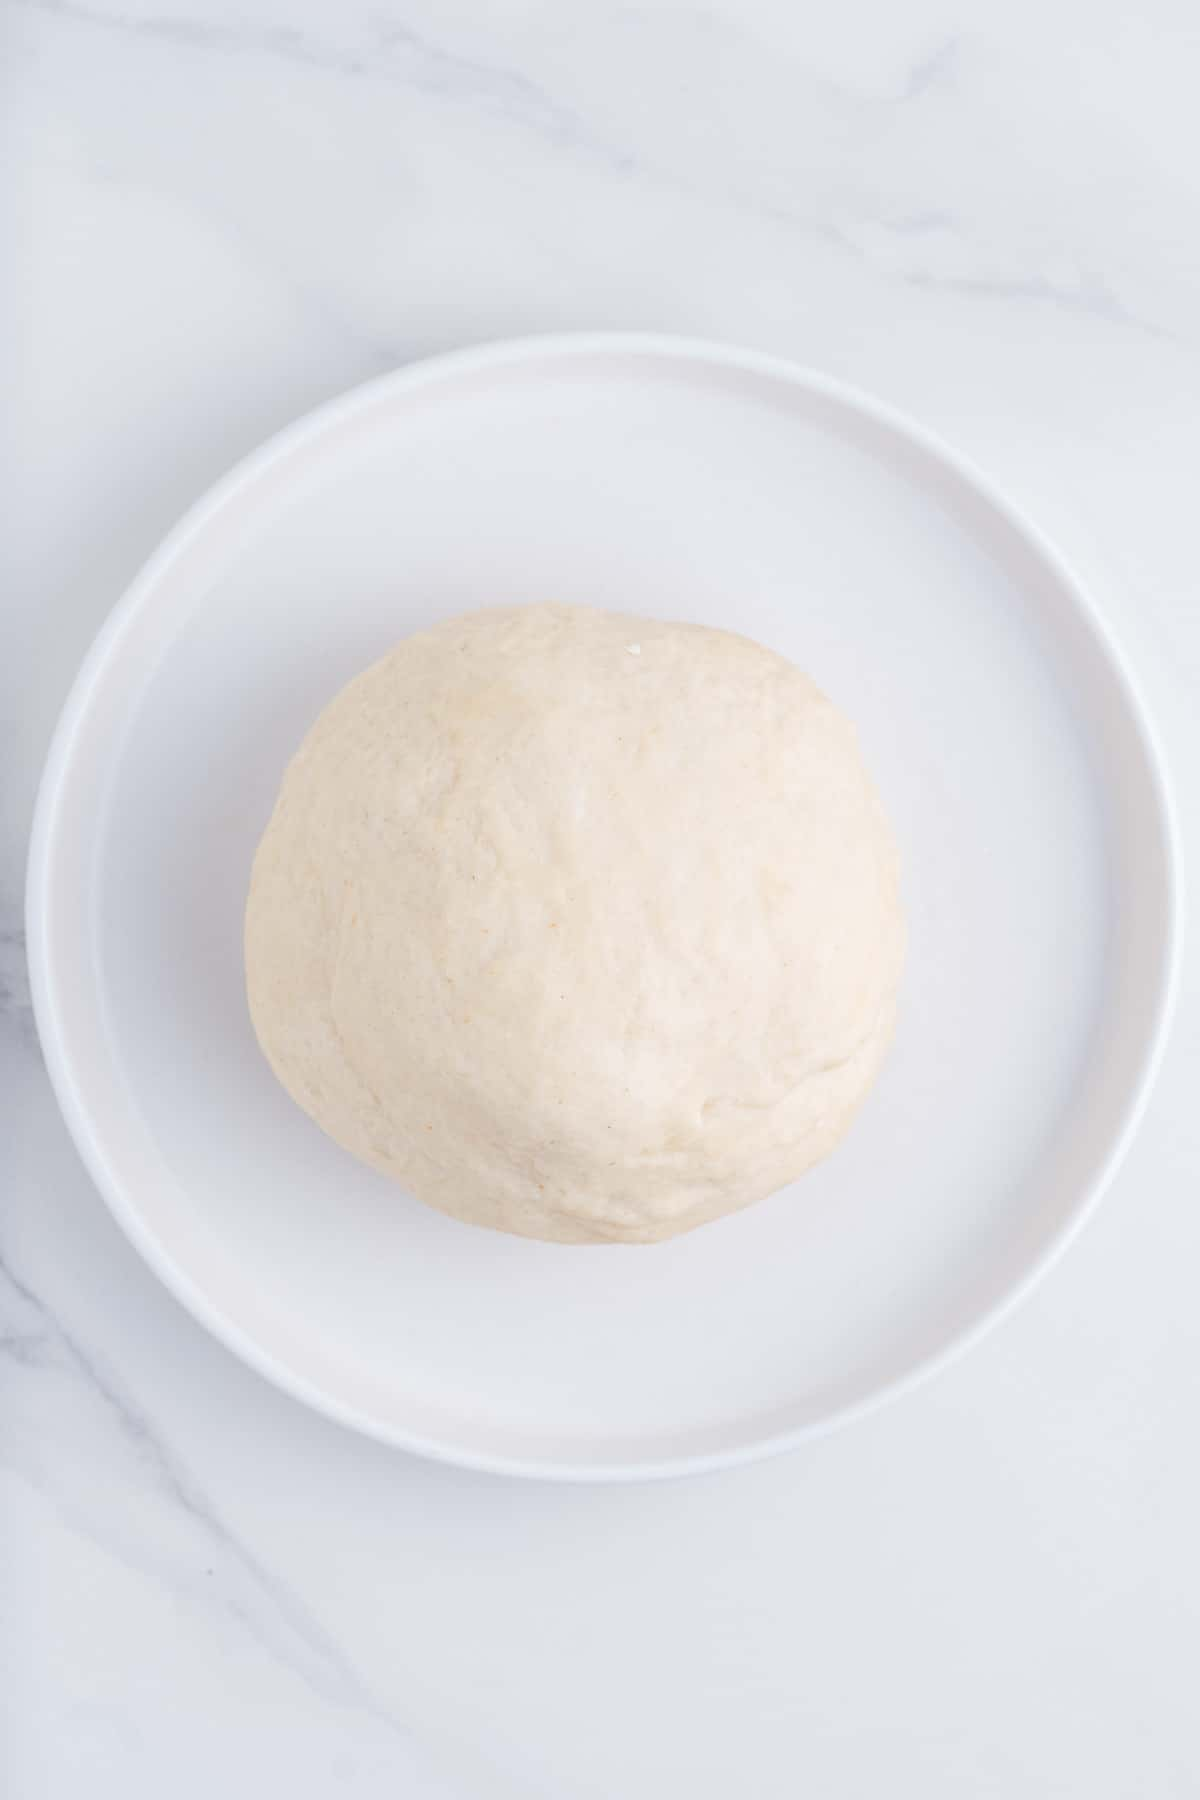 Ball of Dough on a Plate